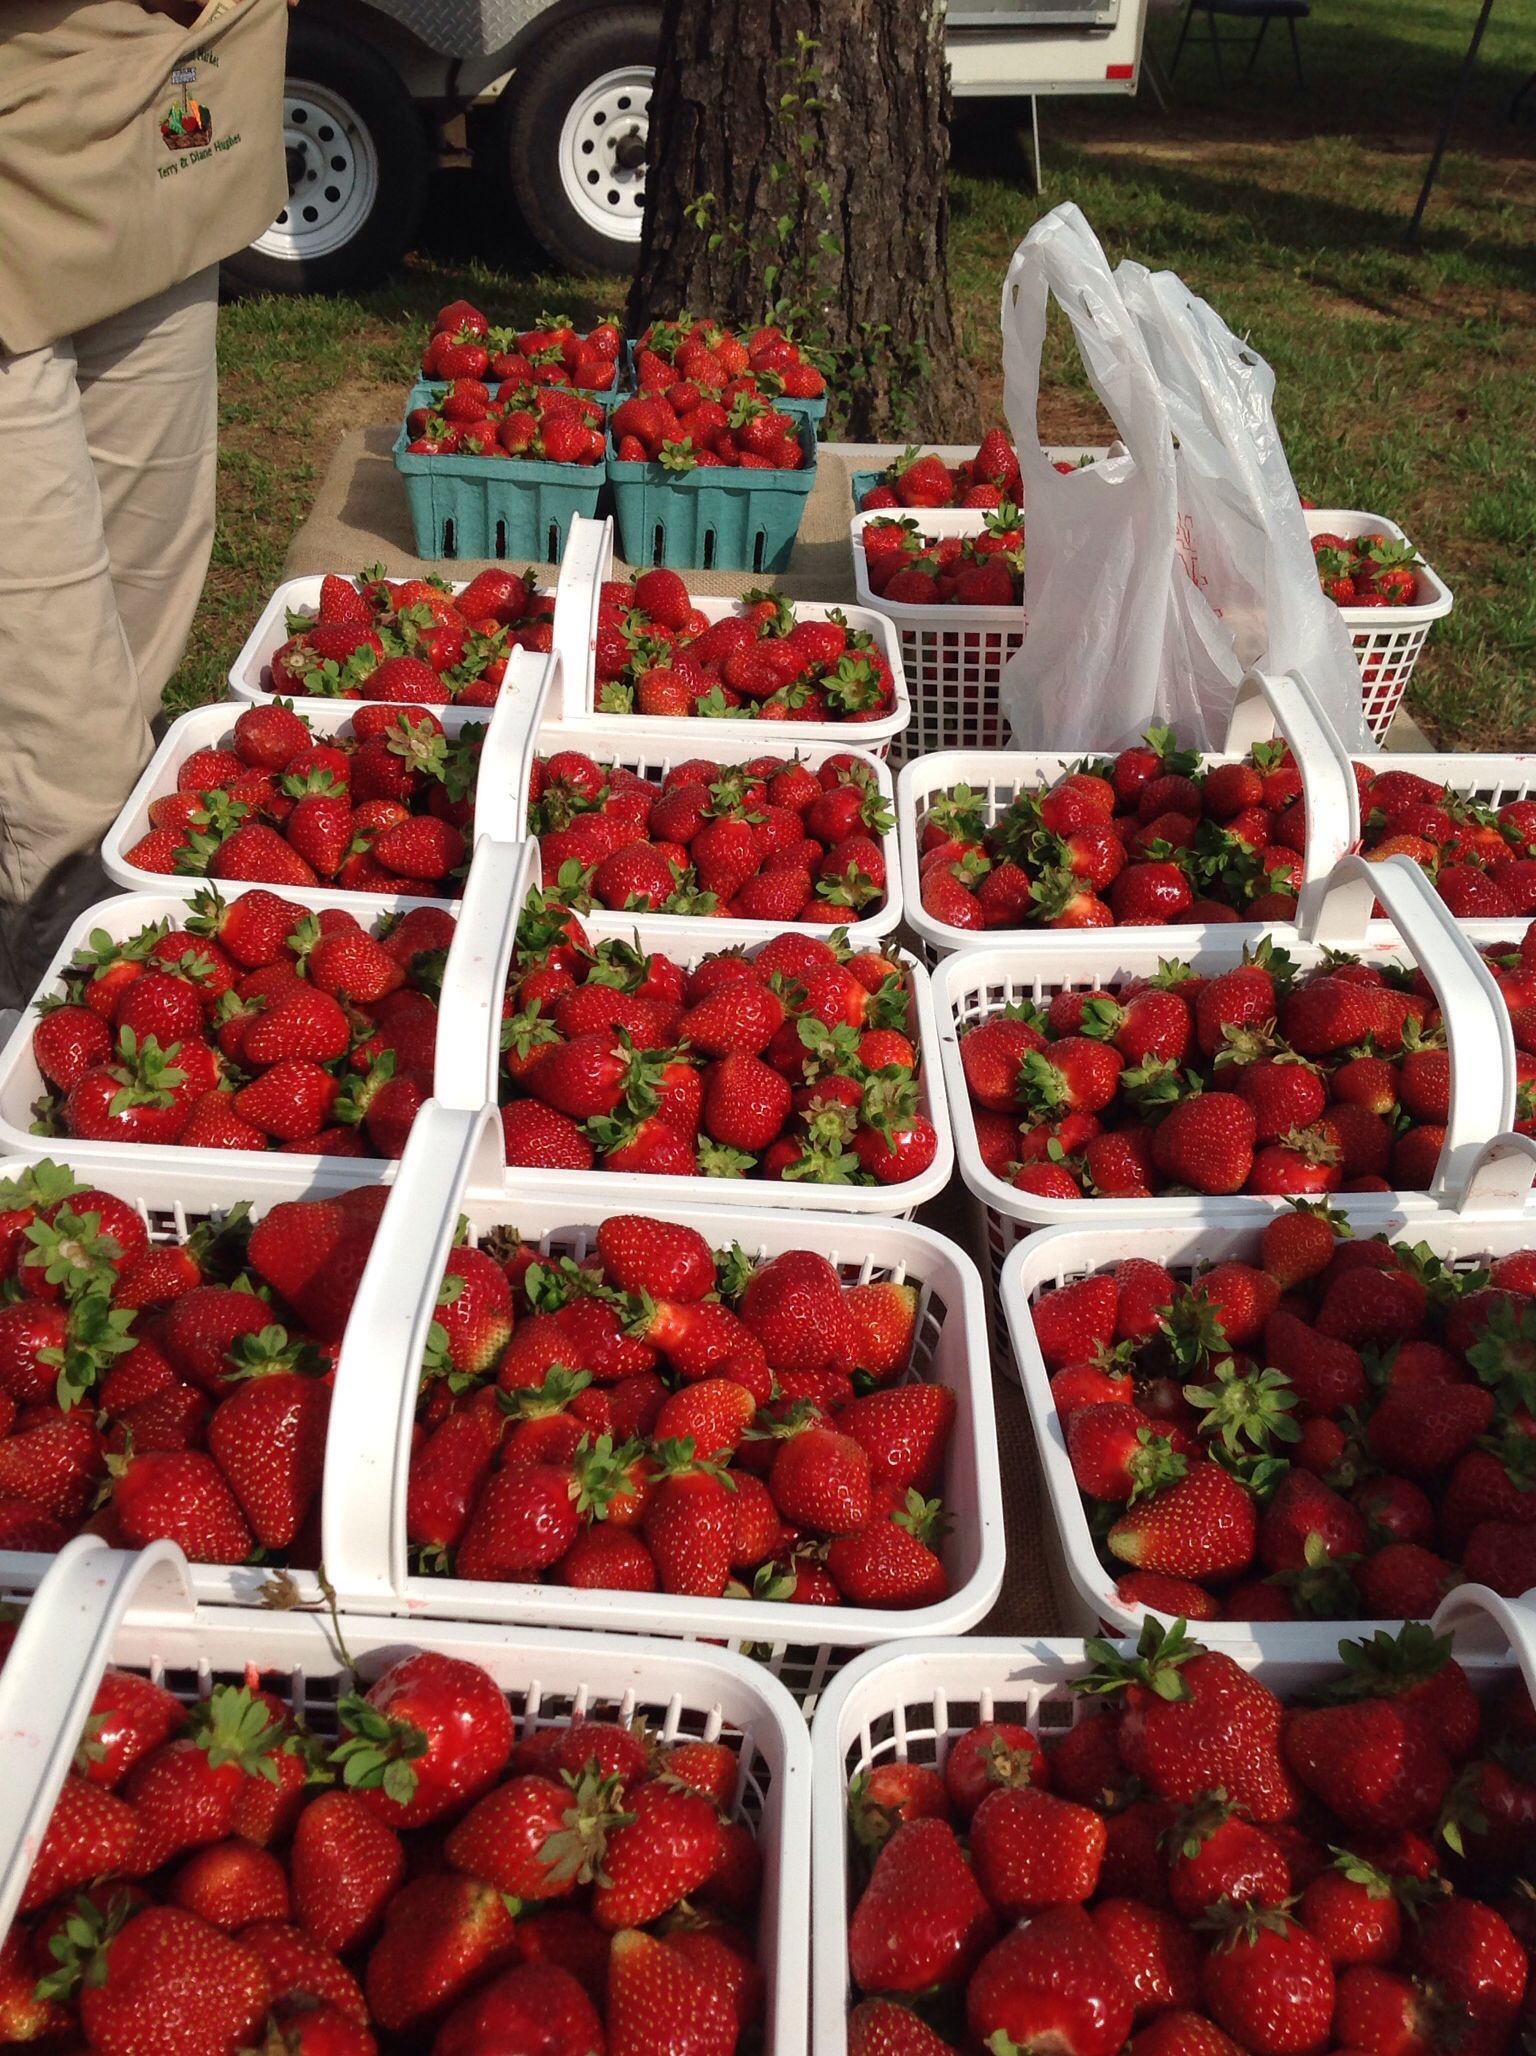 Strawberries from Flat Top Mountain Farm at St Albans